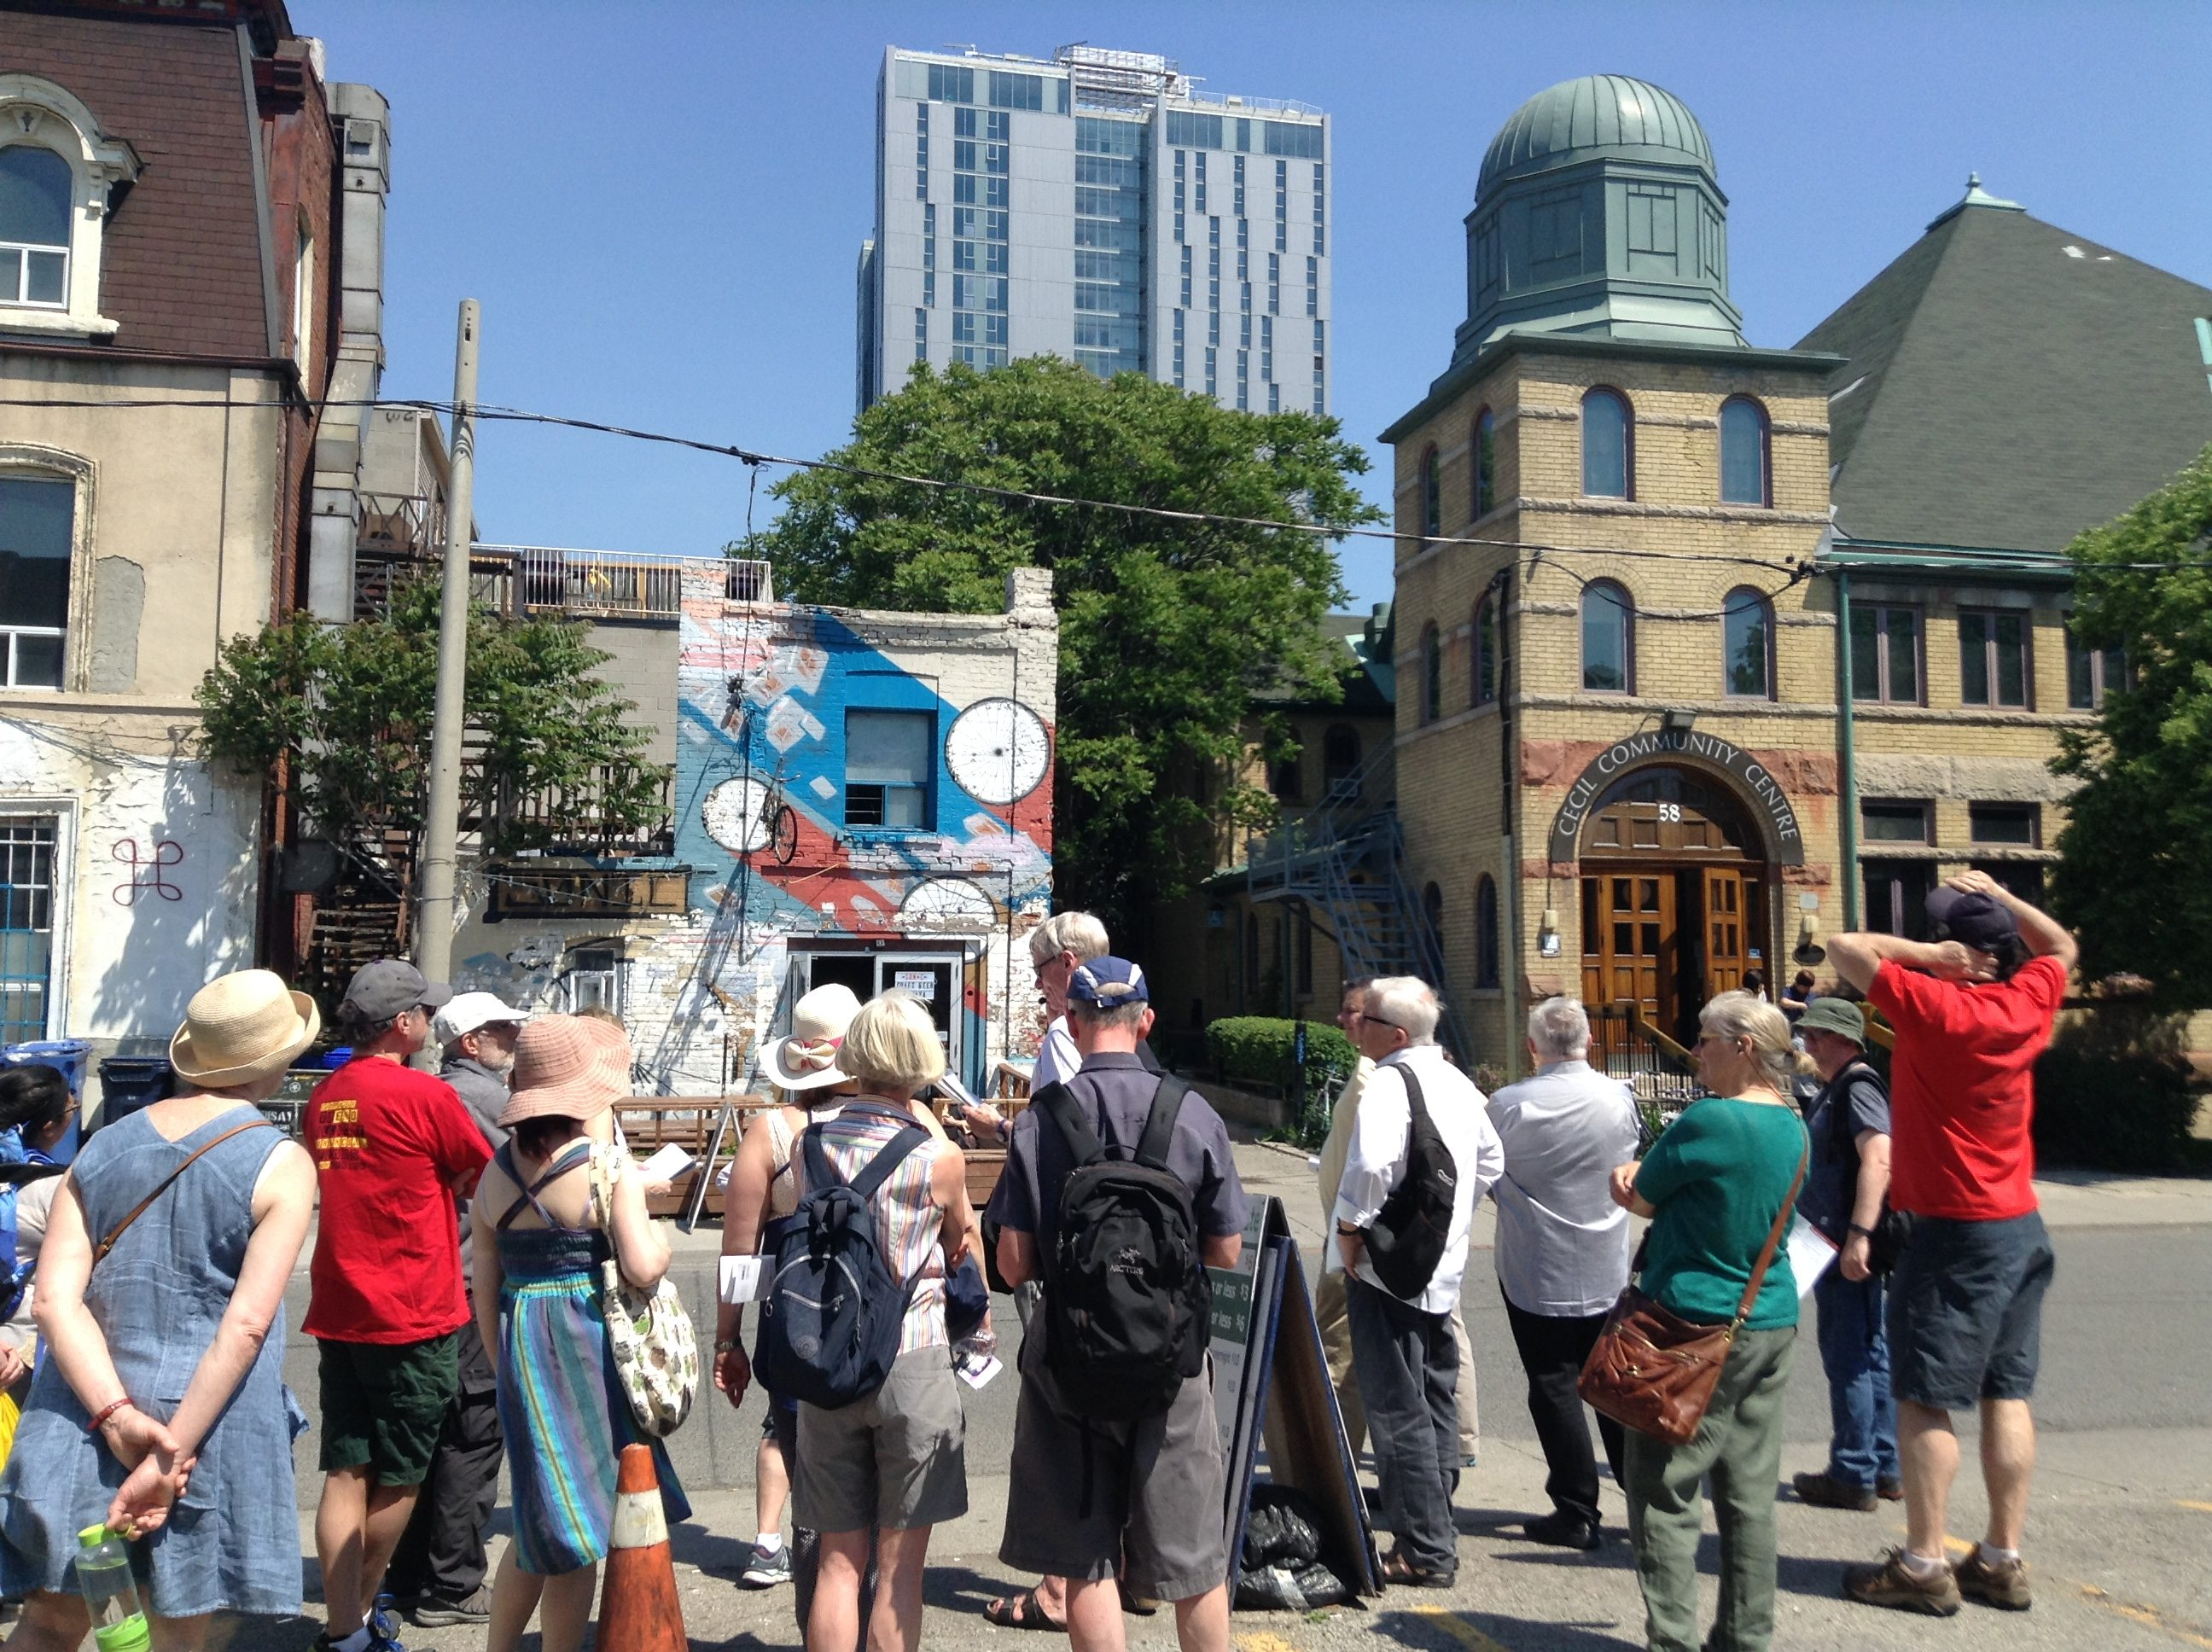 The Workers' History of Spadina tour stops at a community centre on Cecil Street, which used to be a synagogue. Photo by Erin Sylvester.